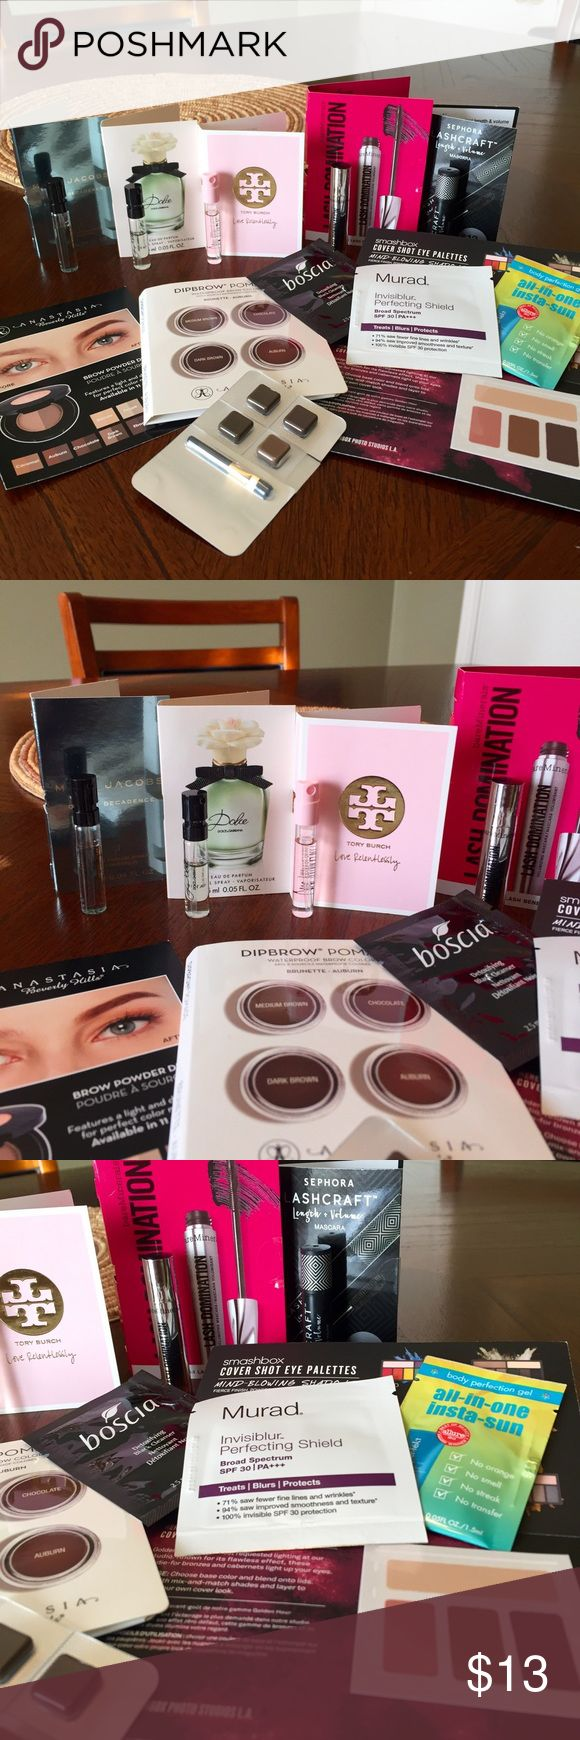 High end make up sample bundle High end make up sample bundle! Includes Anastasia Beverly Hills brow powder duo in dark brown and dipbrow pomade in dark brown, medium brown, and chocolate. Marc Jacobs Devine decadence, dolce & gabana dolce, Tory burch love relentlessly perfumes, murad invisiblur perfecting shield, boscia detoxifying black cleanser, body perfecting gel Insta-sun, smashbox cover shot eyeshadows, bare minerals lash domination mascara , and Sephora lash craft mascara. DISCOUNTS…